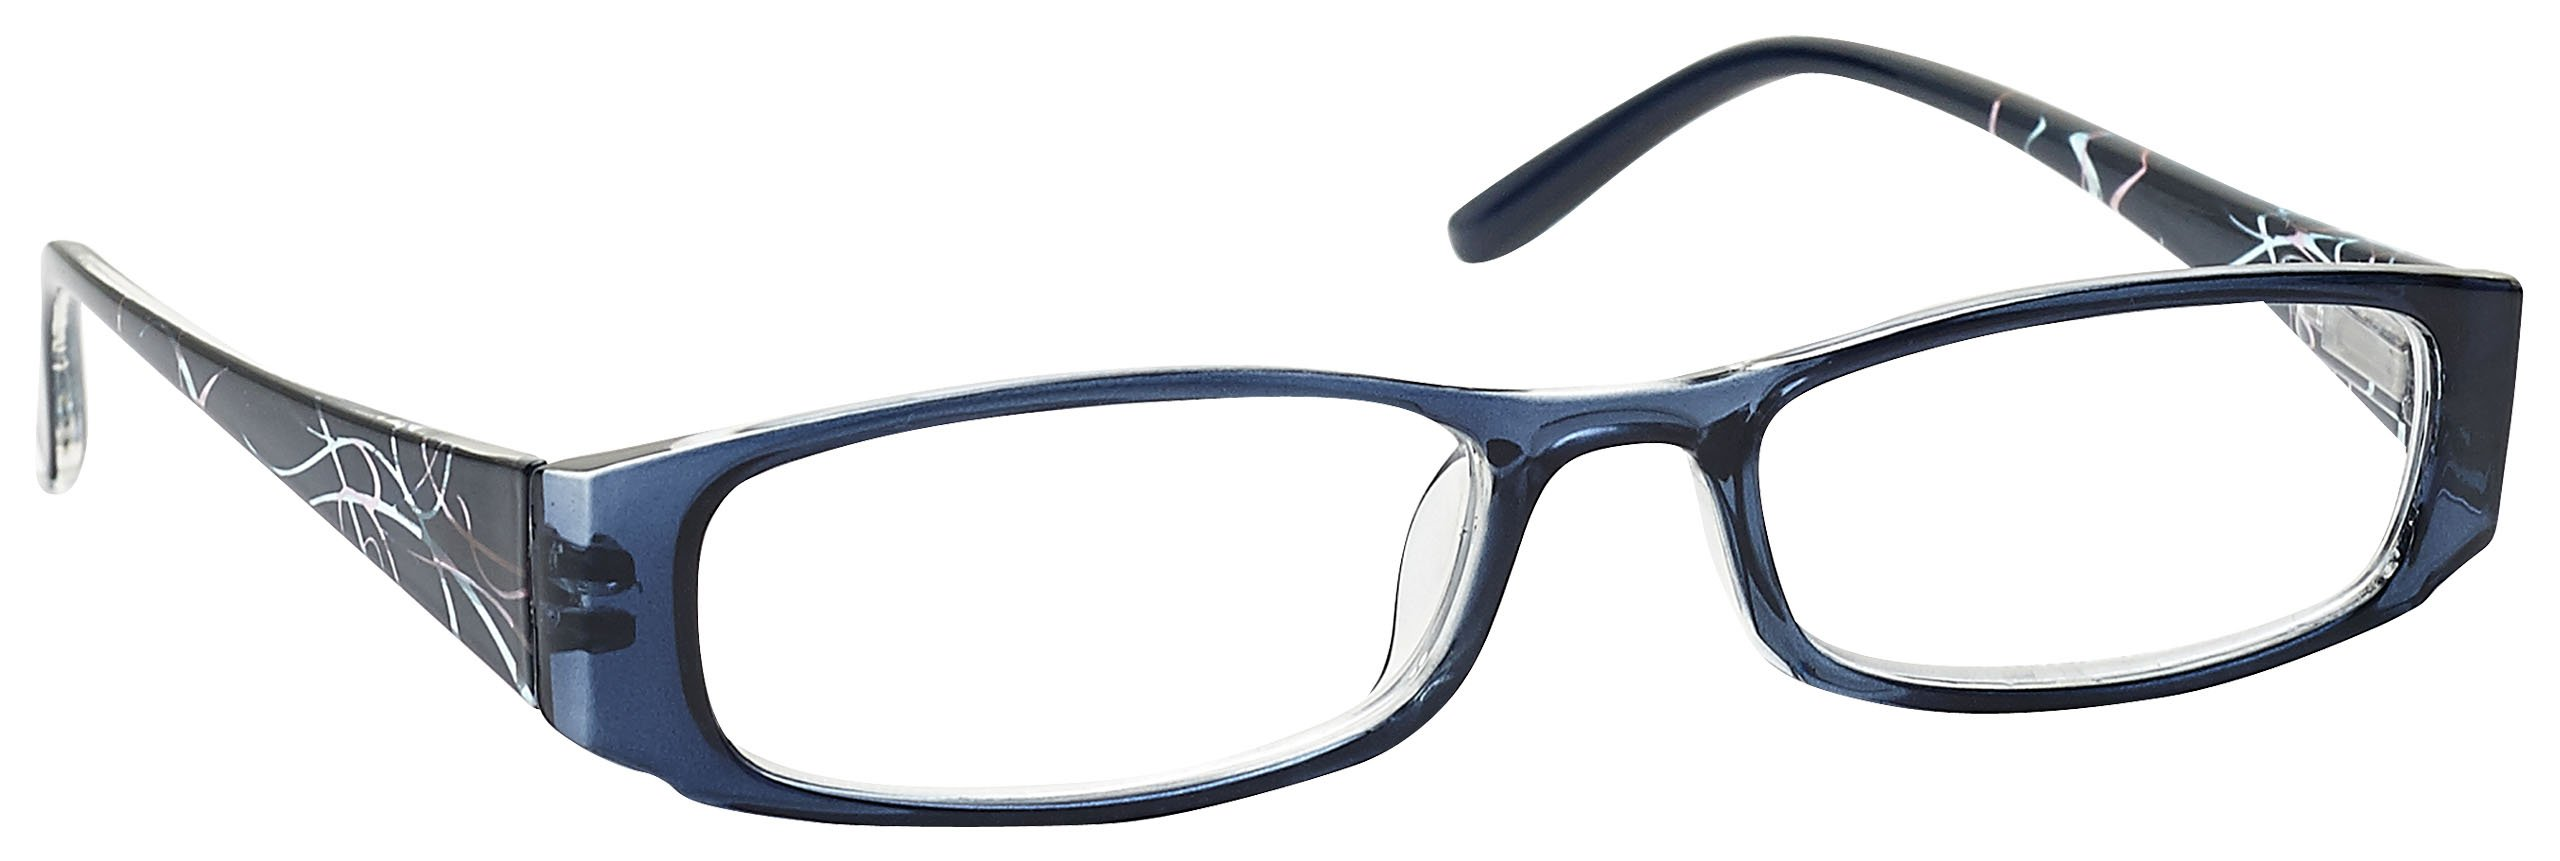 The Reading Glasses Company Navy Blue Patterned Lightweight Readers Designer Style Womens Ladies R74-3 +1.75